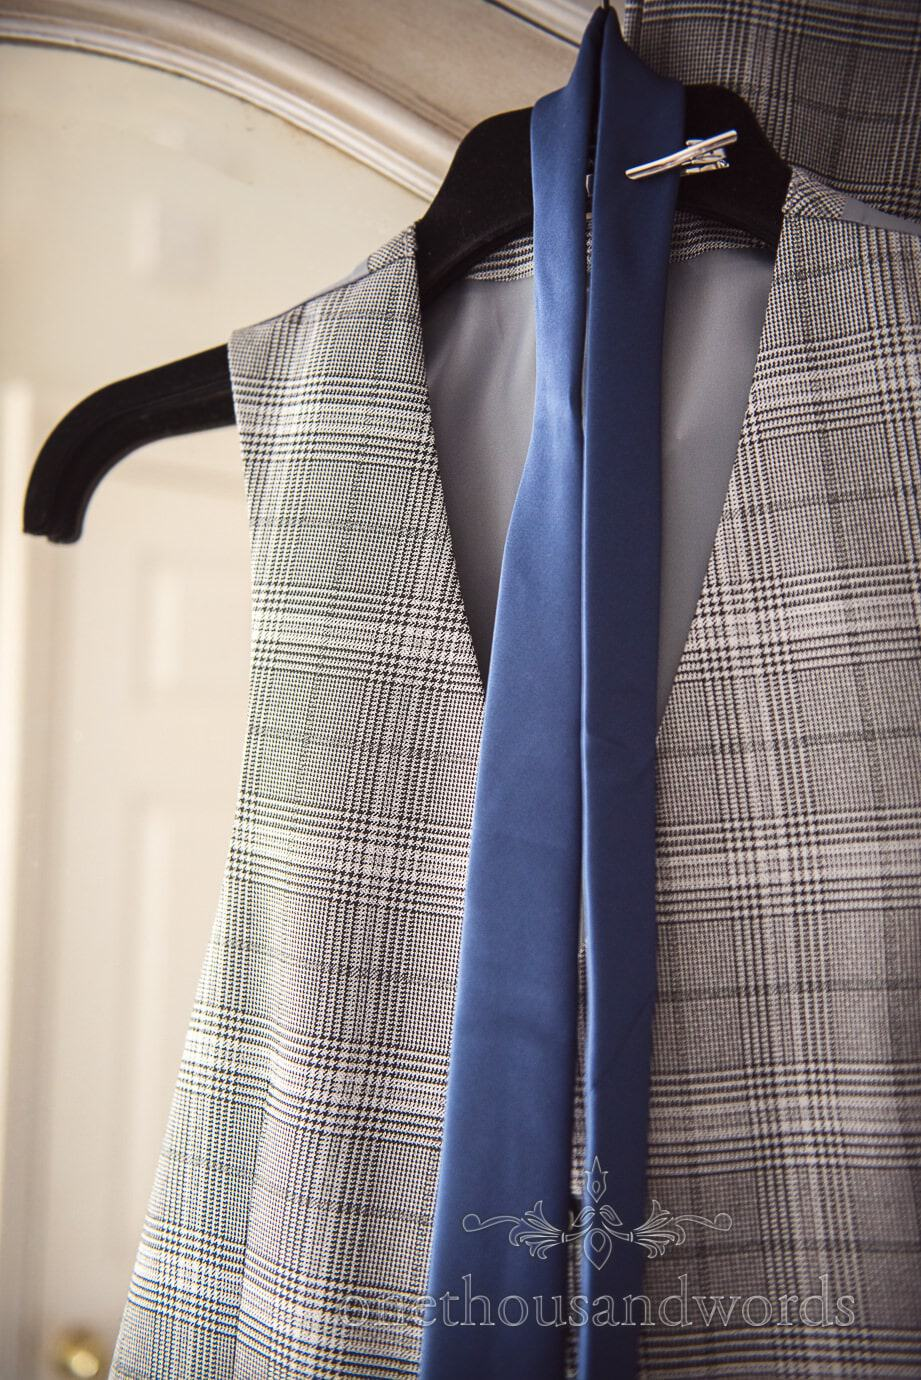 Grey prince of Wales check waistcoat with blue tie hanging on wedding morning